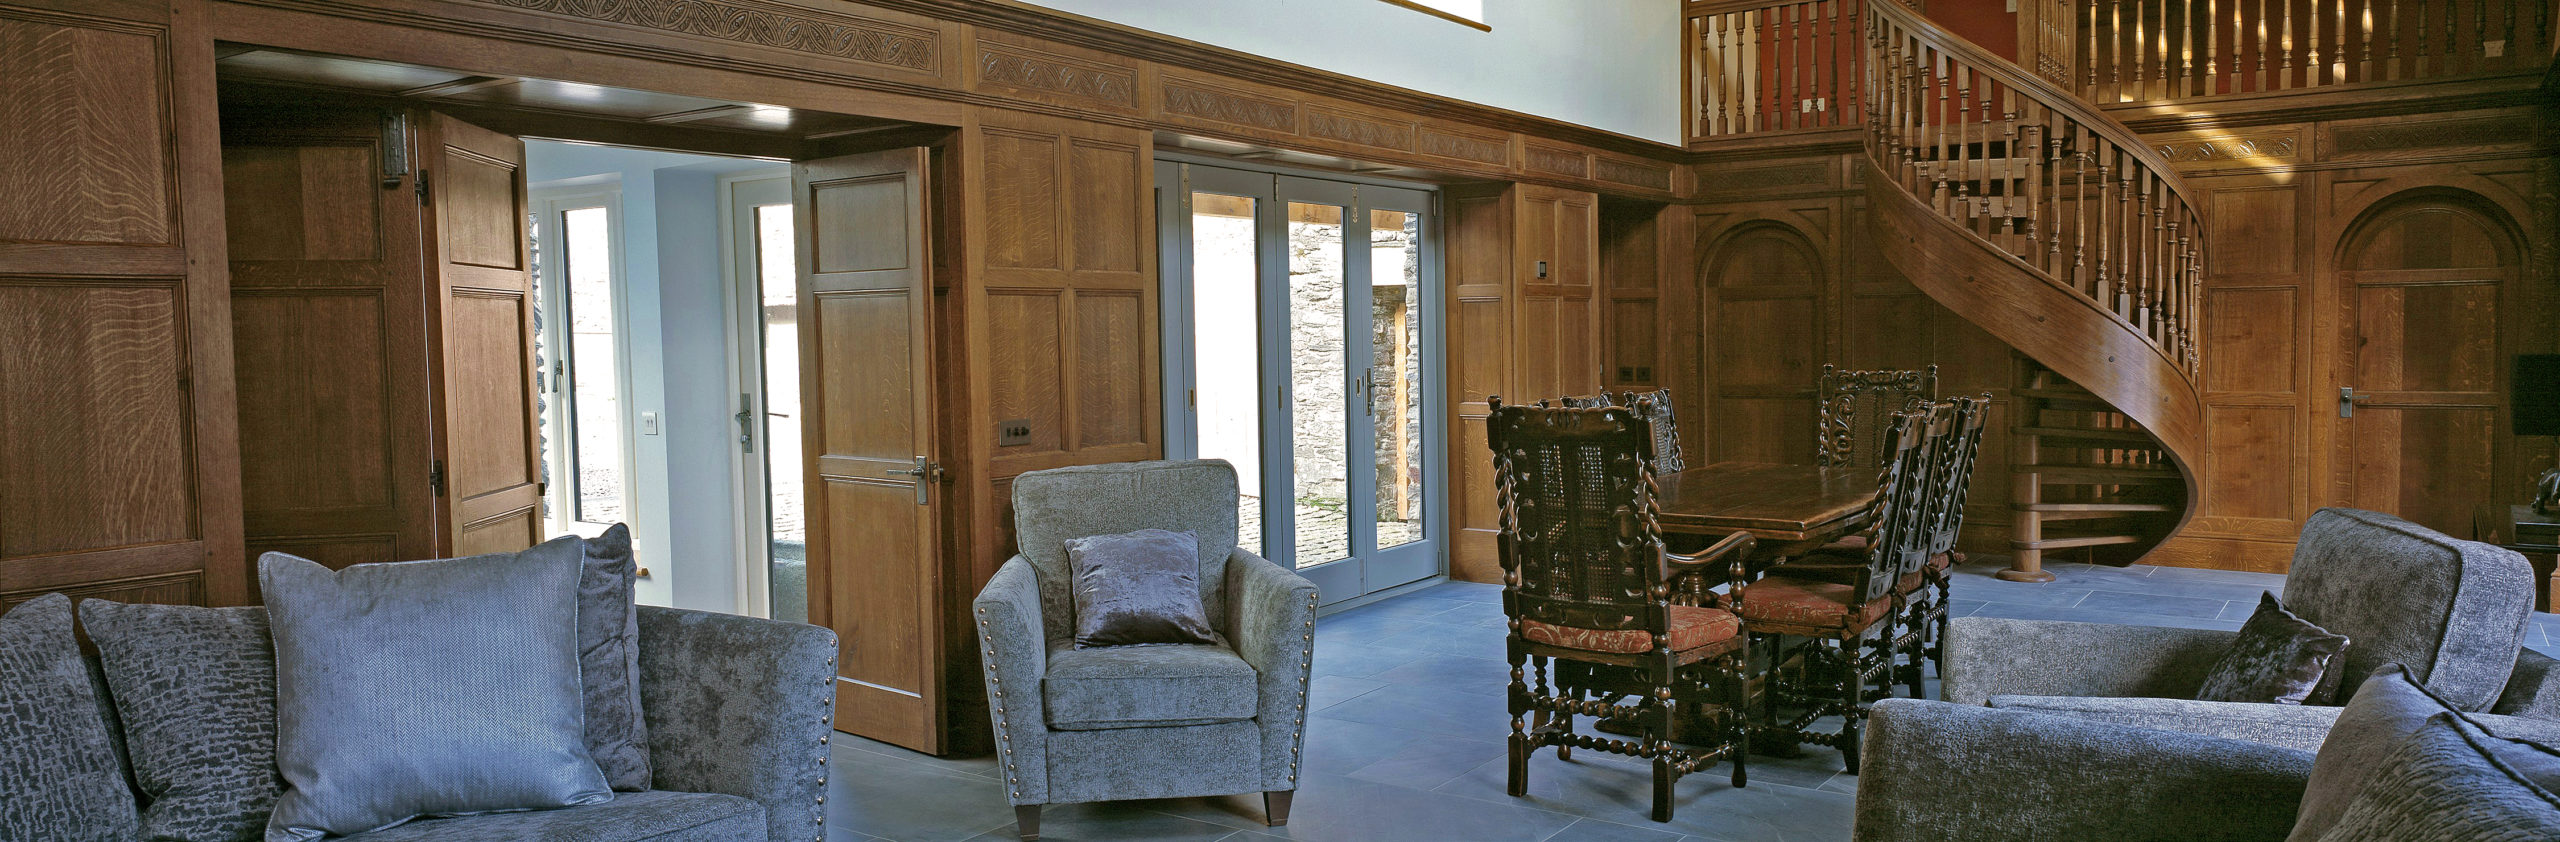 Period+architectural+joinery+staircases+Oak+interiors+panelling+wall panelling